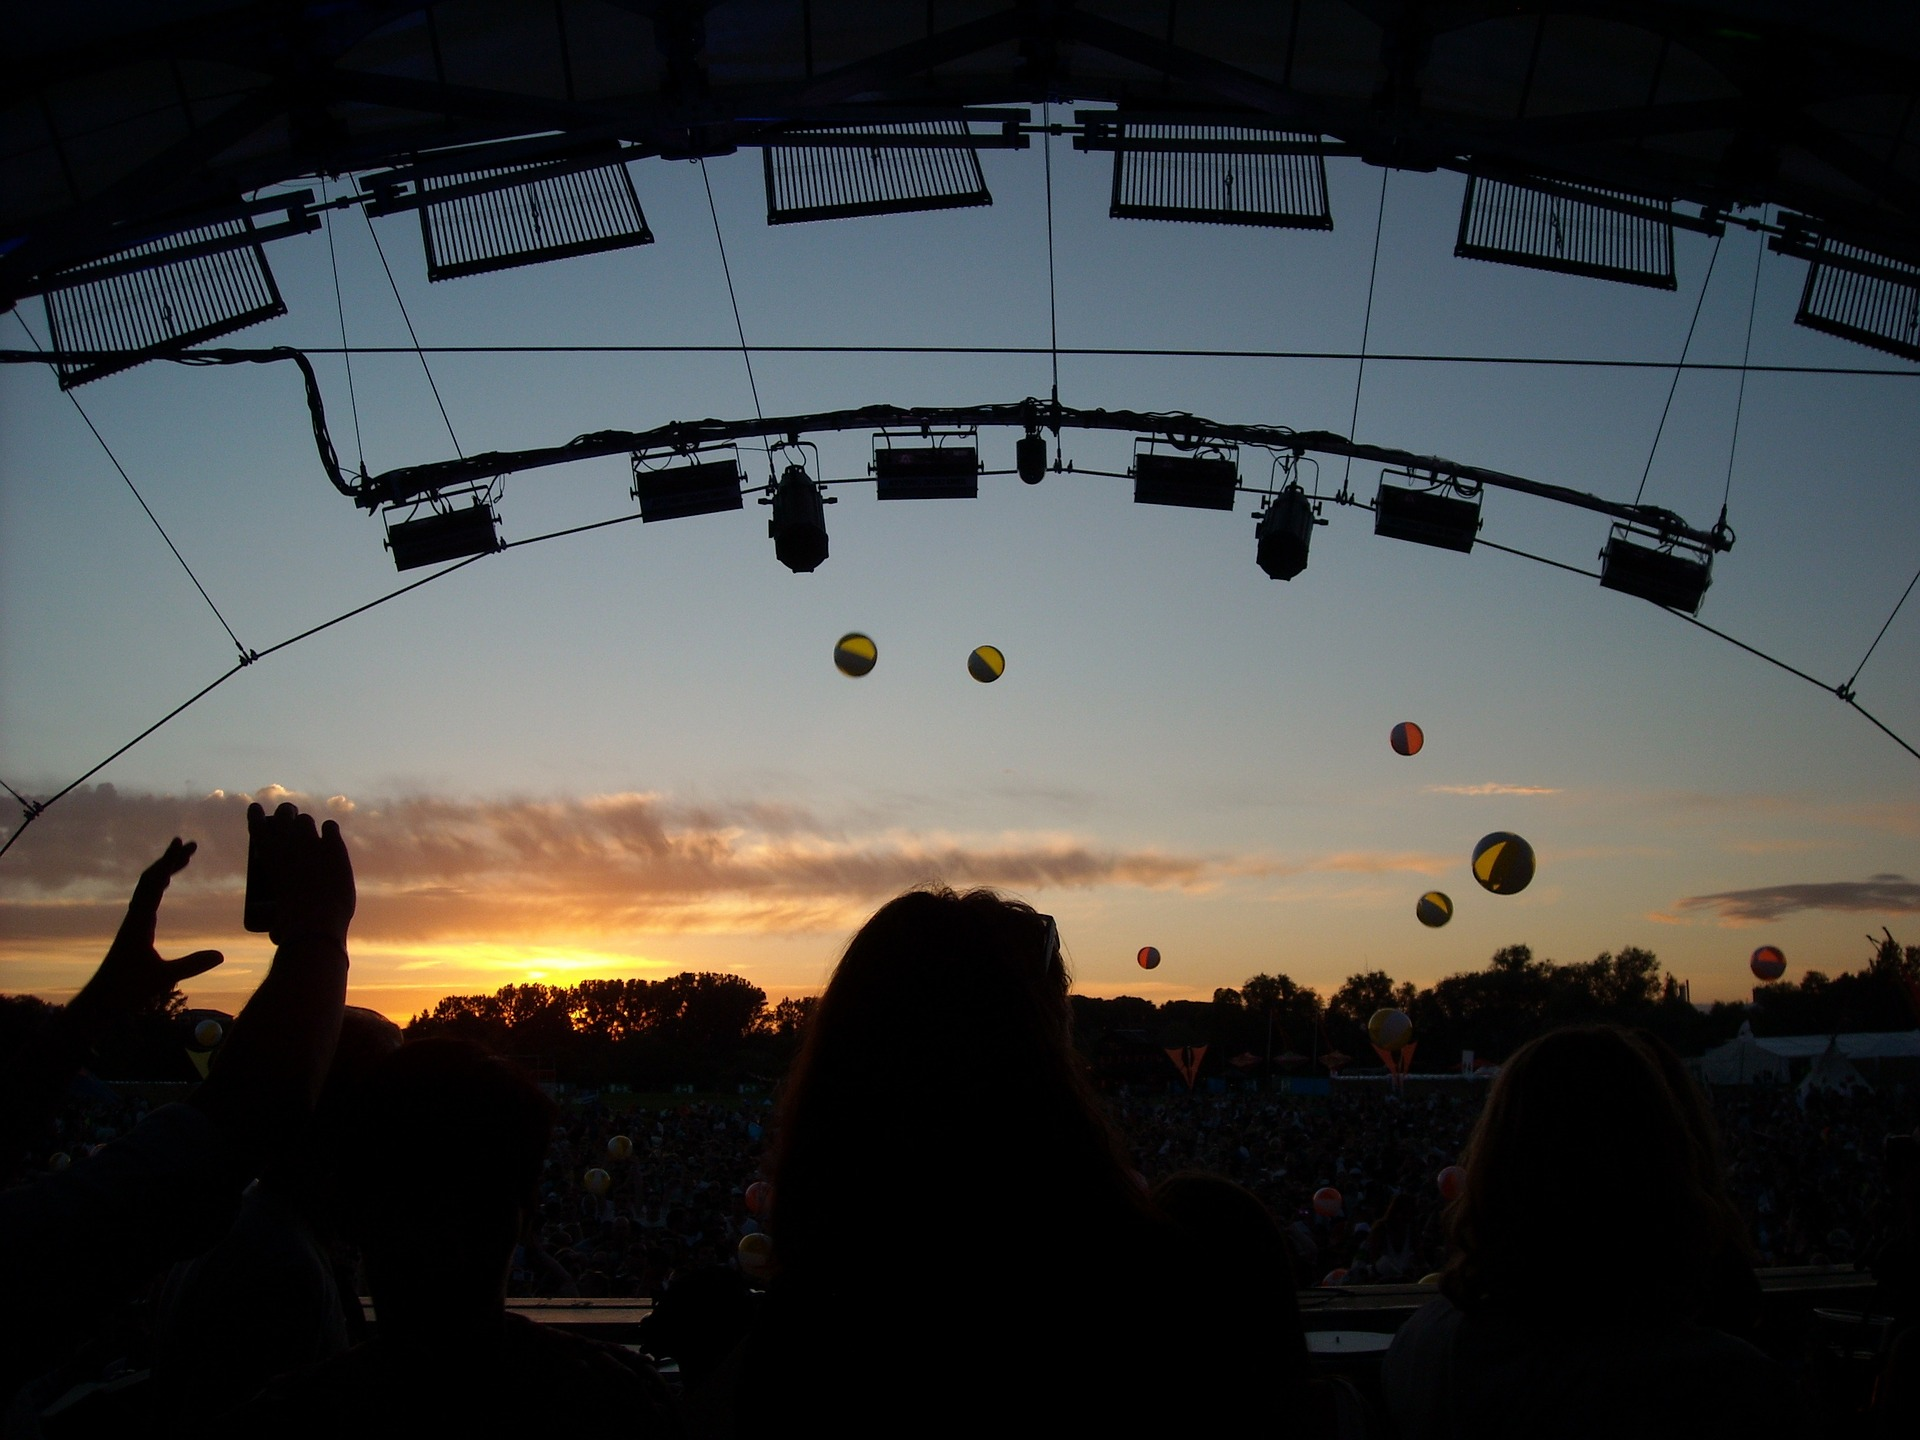 Enjoy the sunset at an upcoming festivals in Europe